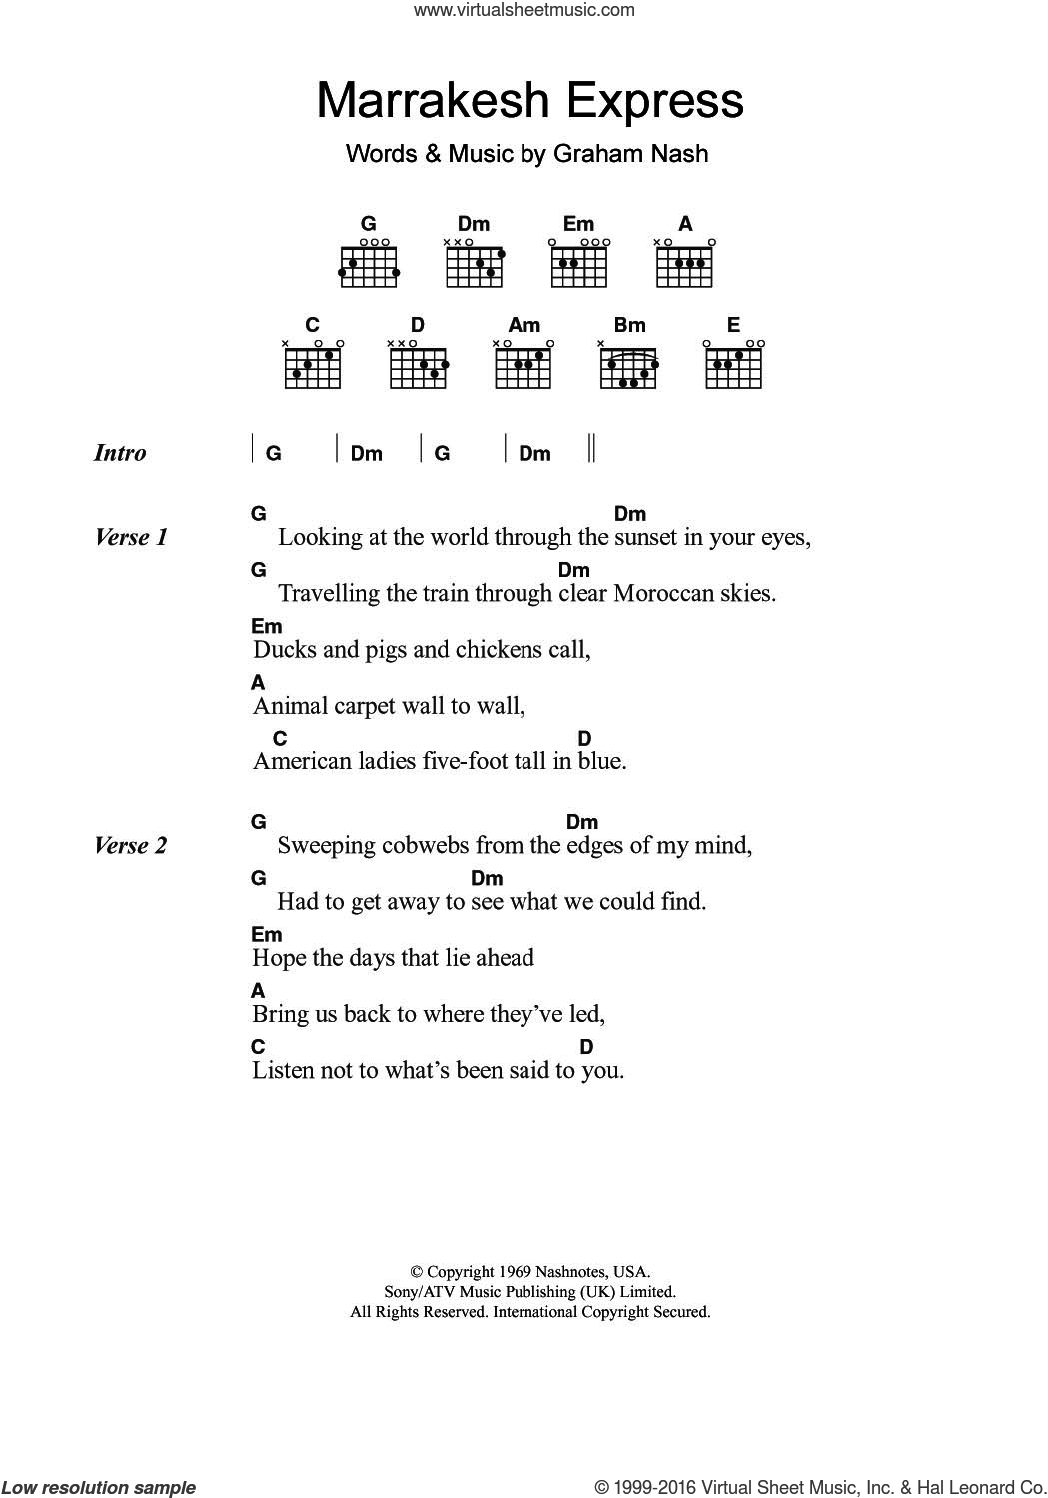 Marrakesh Express sheet music for guitar (chords) by Crosby, Stills & Nash and Graham Nash, intermediate skill level